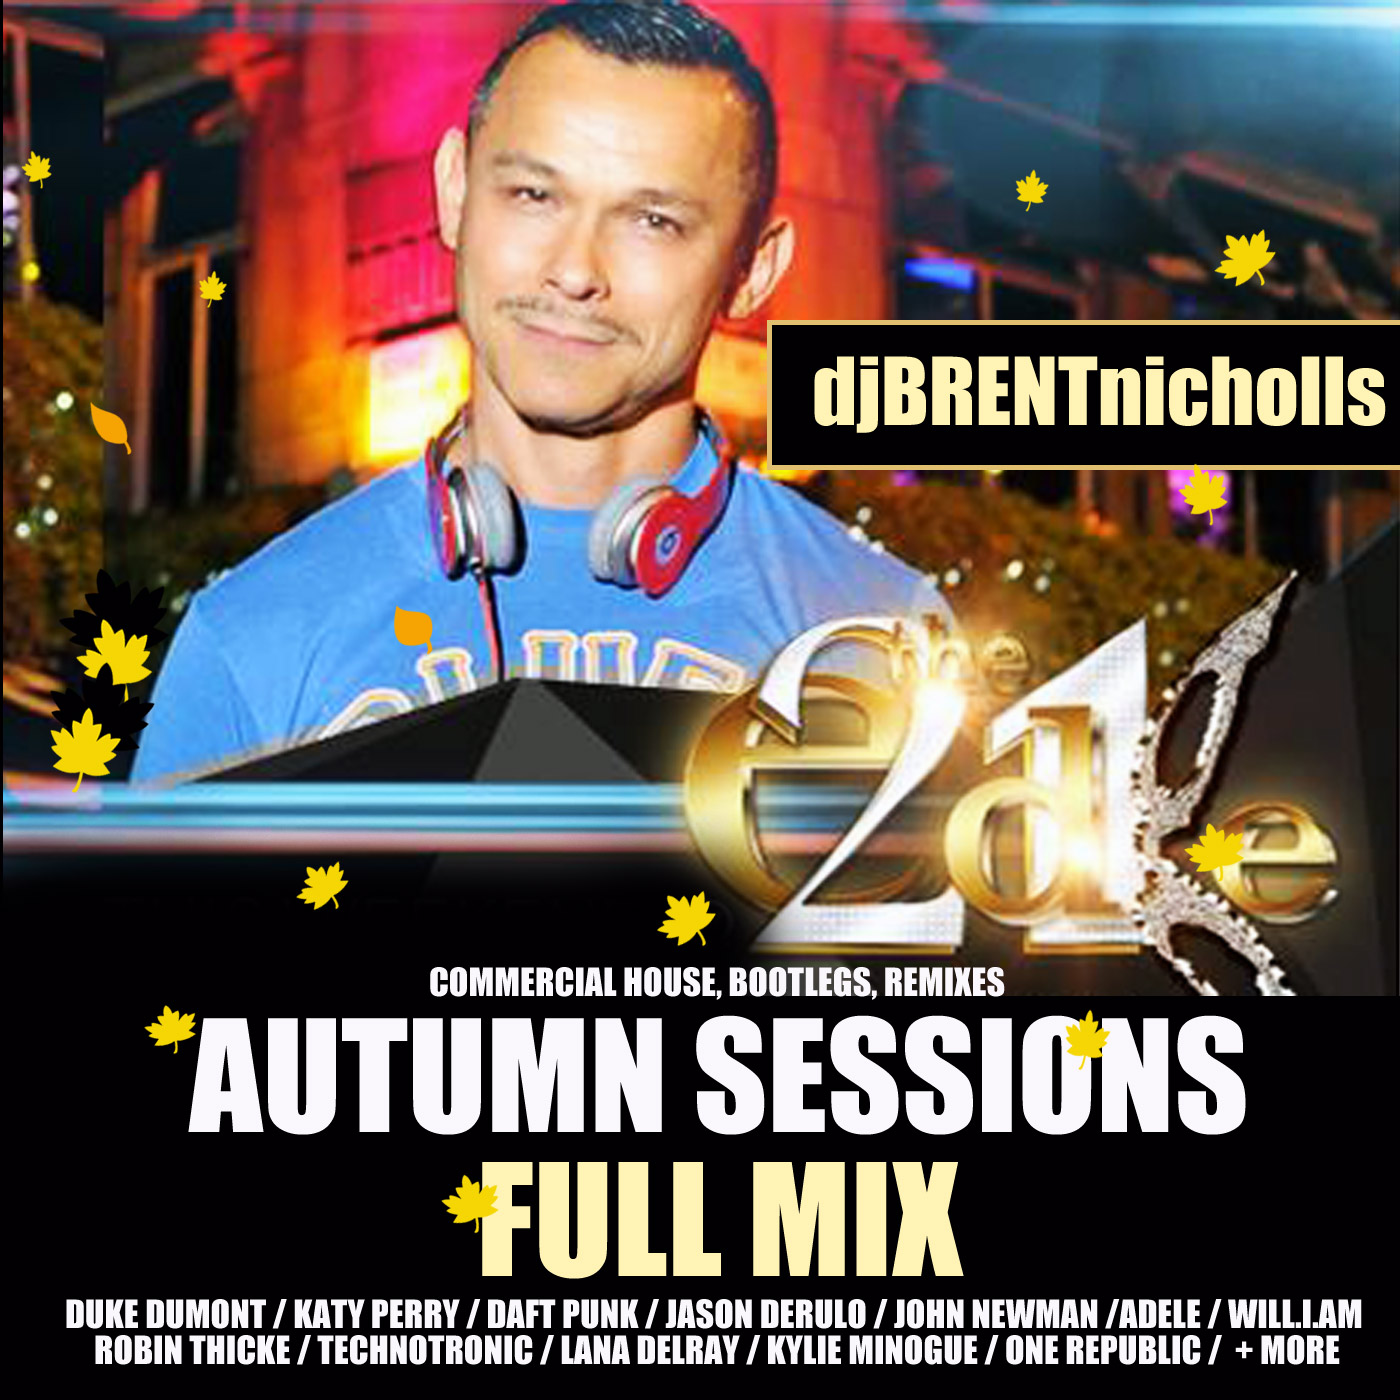 PODCAST: EDGE AUTUMN SESSIONS 2013